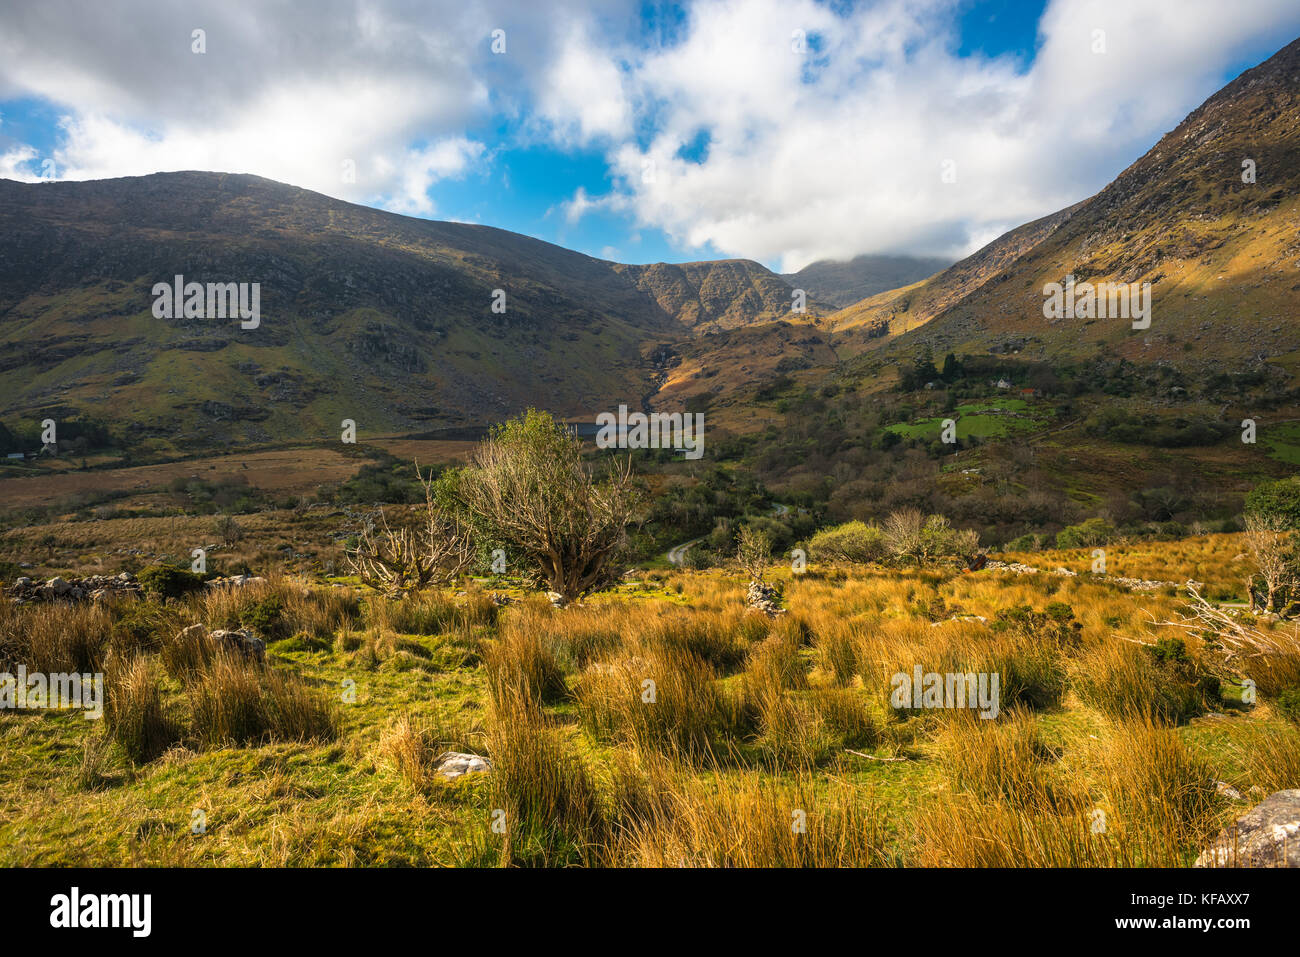 Irish landscape at Co. Kerry. - Stock Image